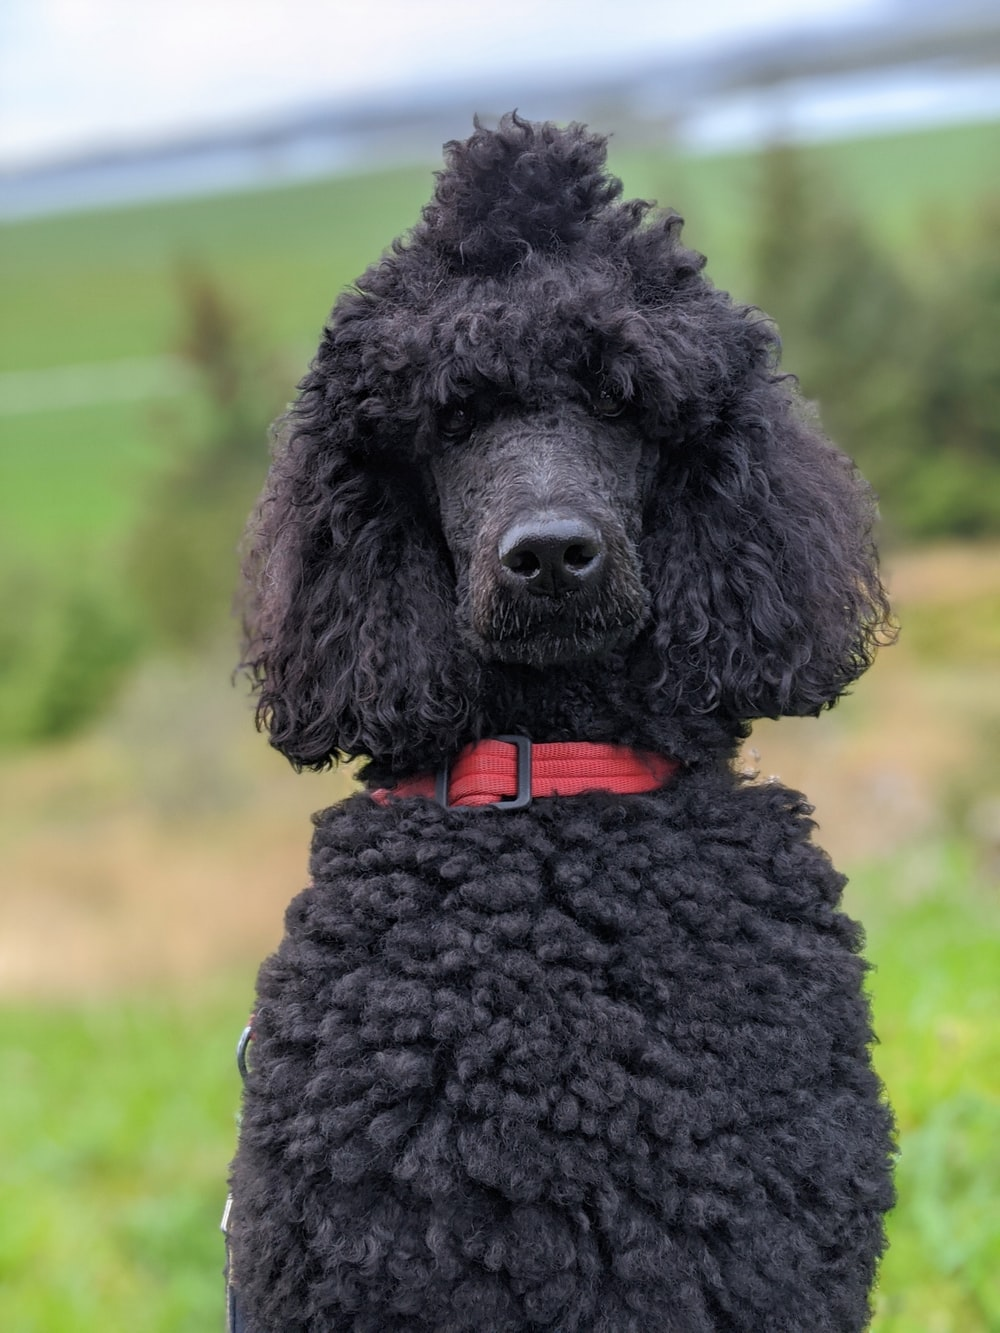 black poodle on green grass during daytime